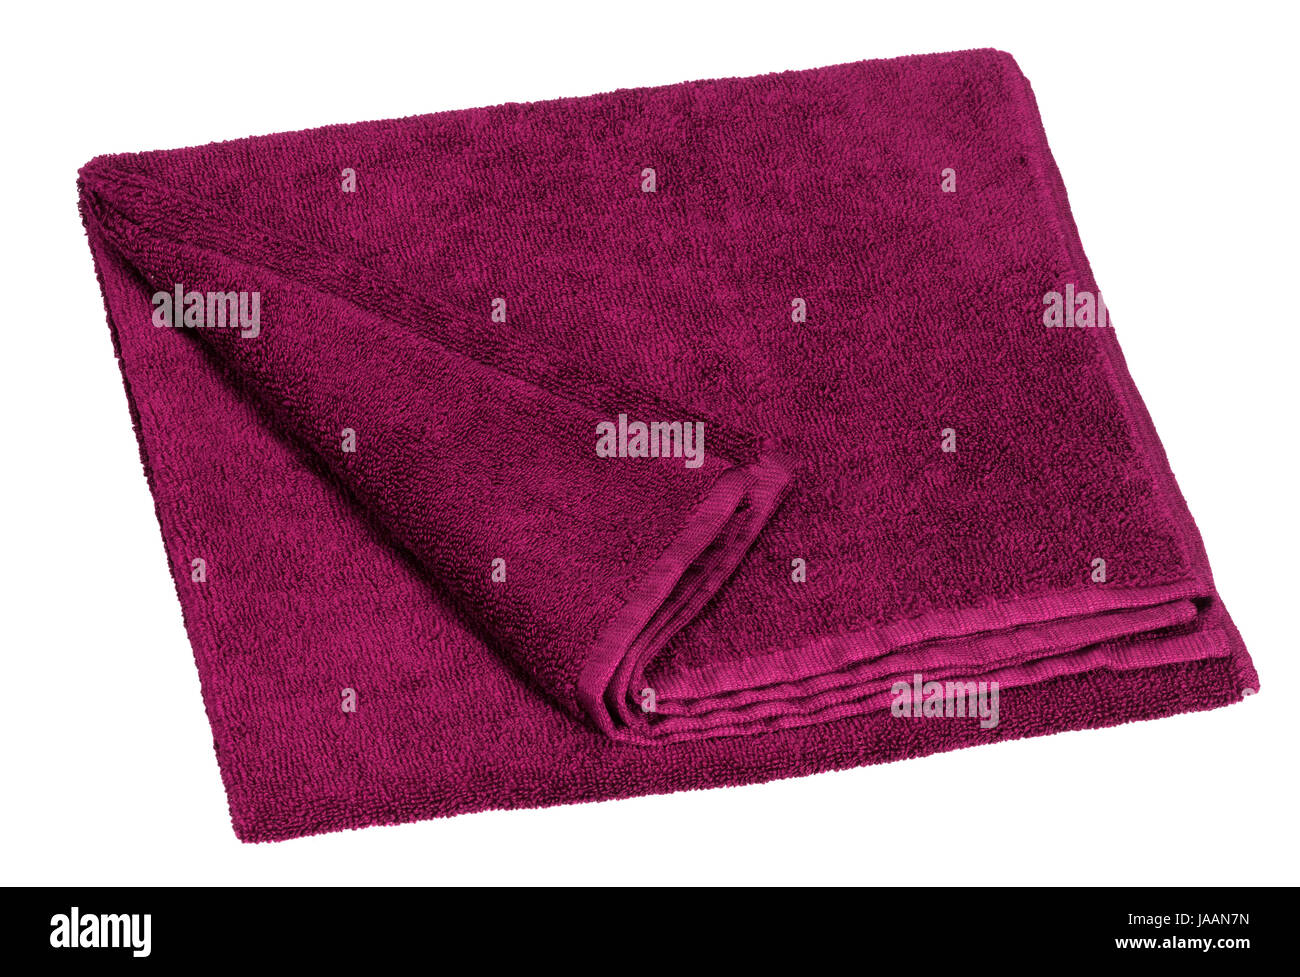 a violet towel in white back - Stock Image